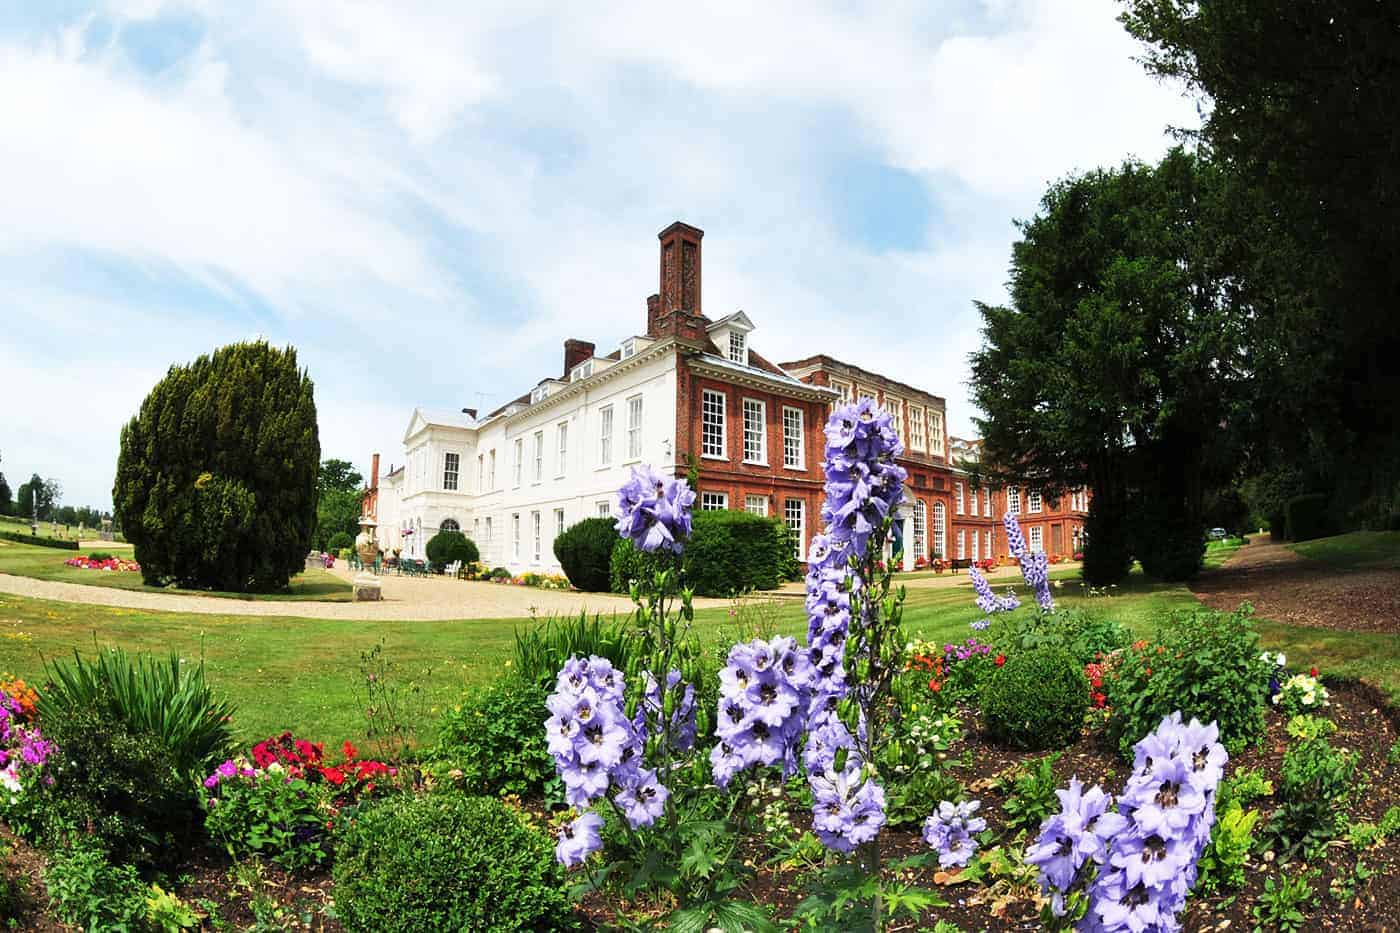 South East aspect of Gosfield Hall with beautiful flowers